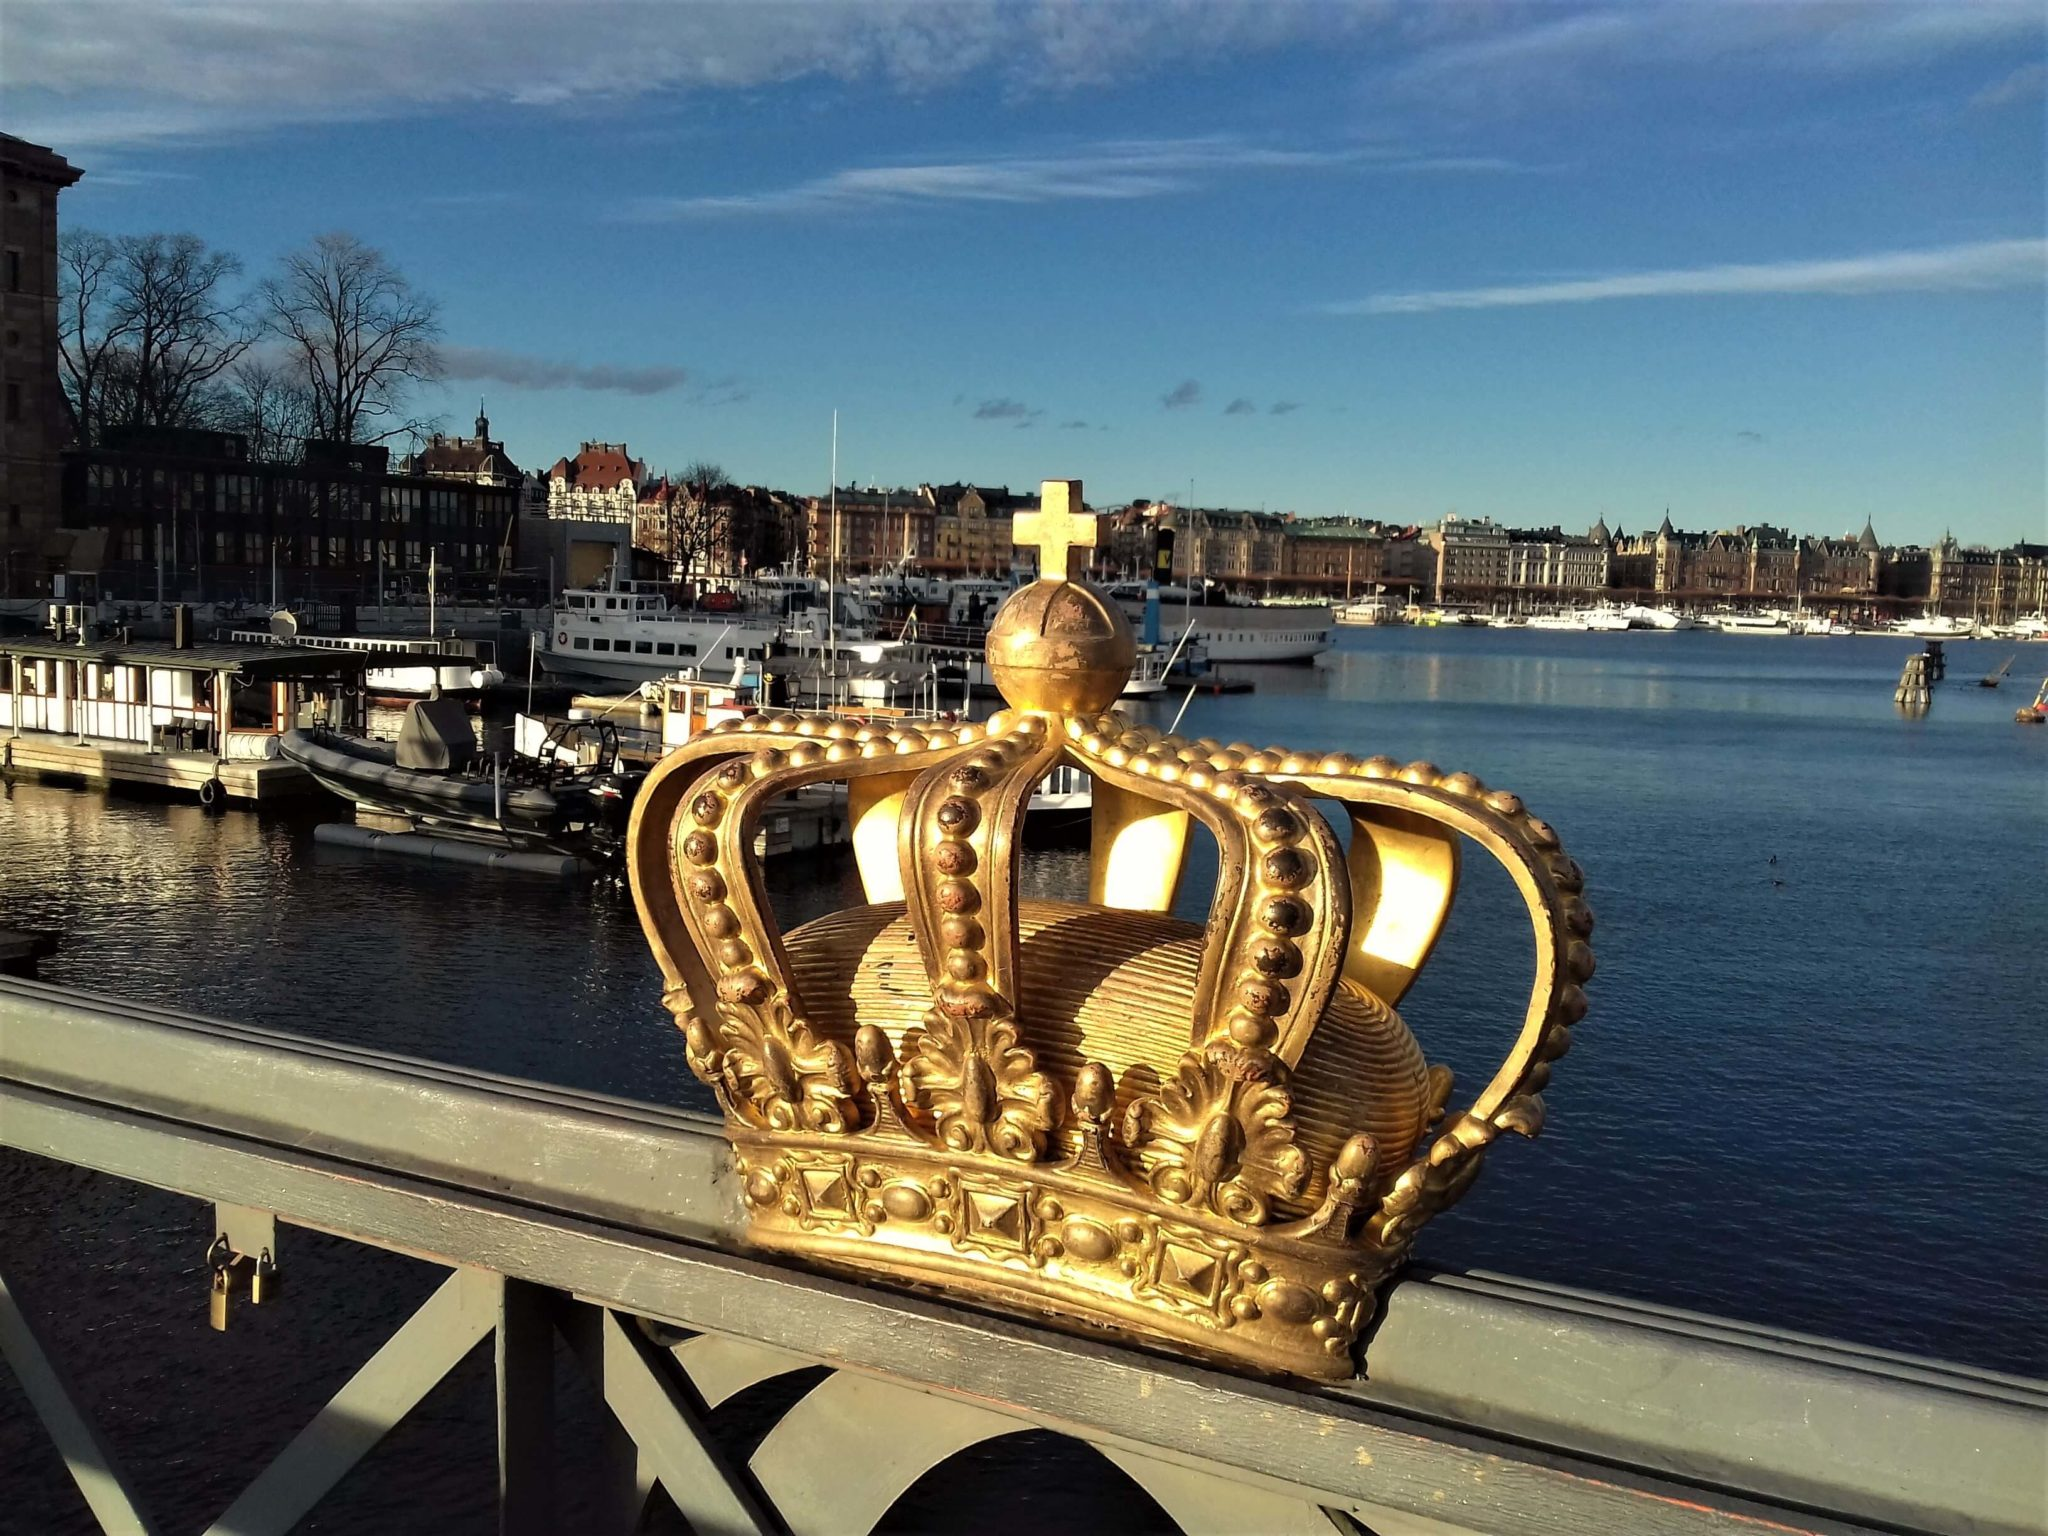 https://i2.wp.com/romanroams.com/wp-content/uploads/2017/04/swedish_crown_stockholm.jpg?w=2048&ssl=1